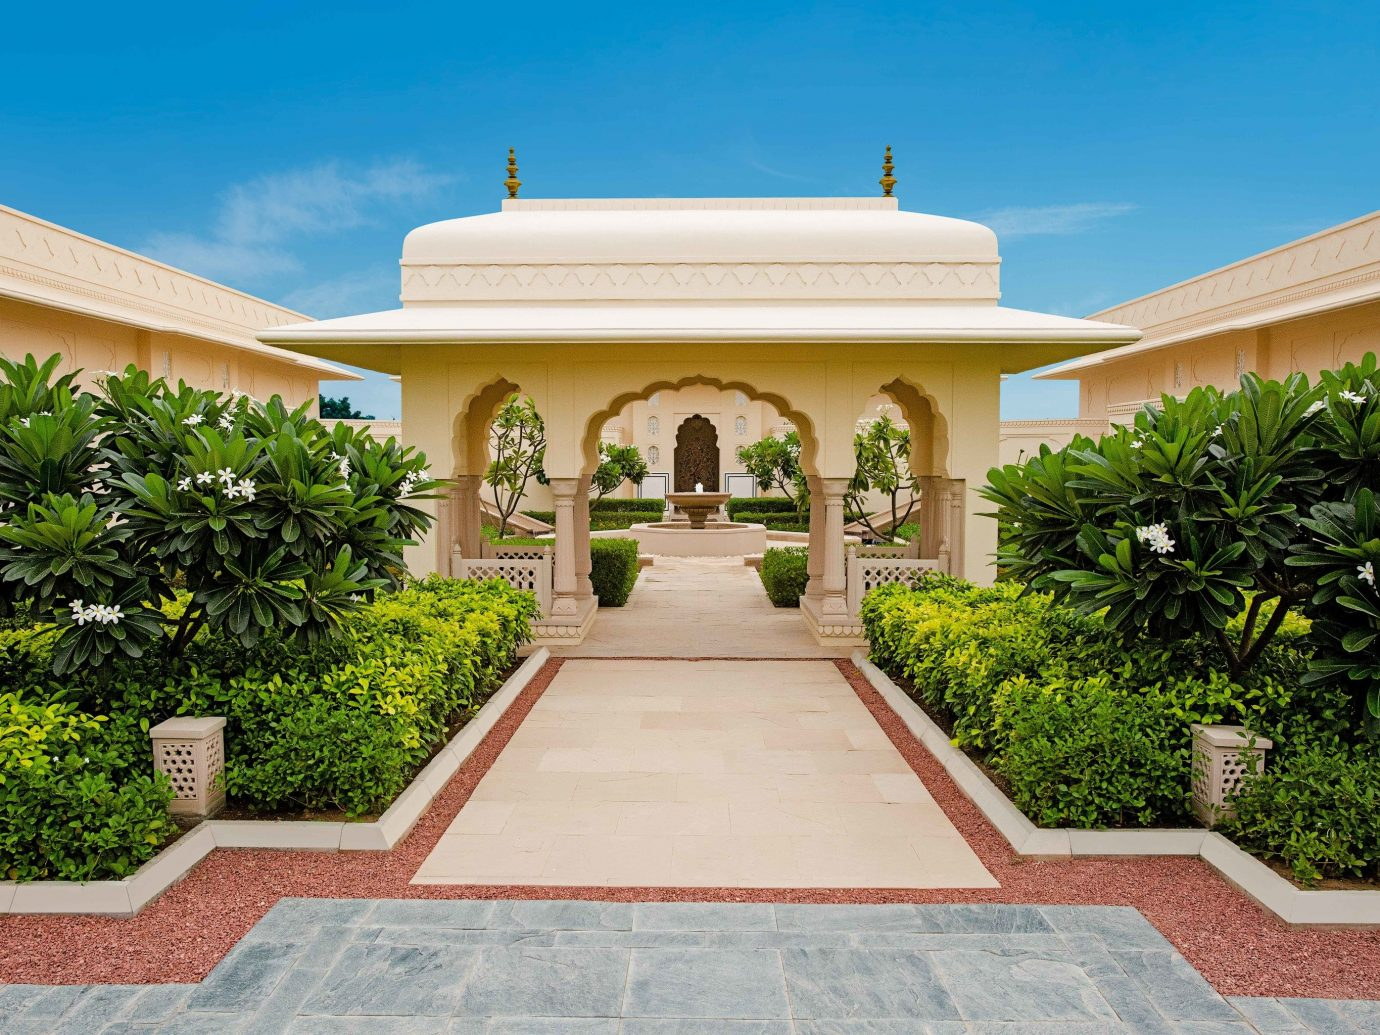 estate property home mansion real estate hacienda residential area sky Villa house Courtyard facade official residence landscaping building palm tree